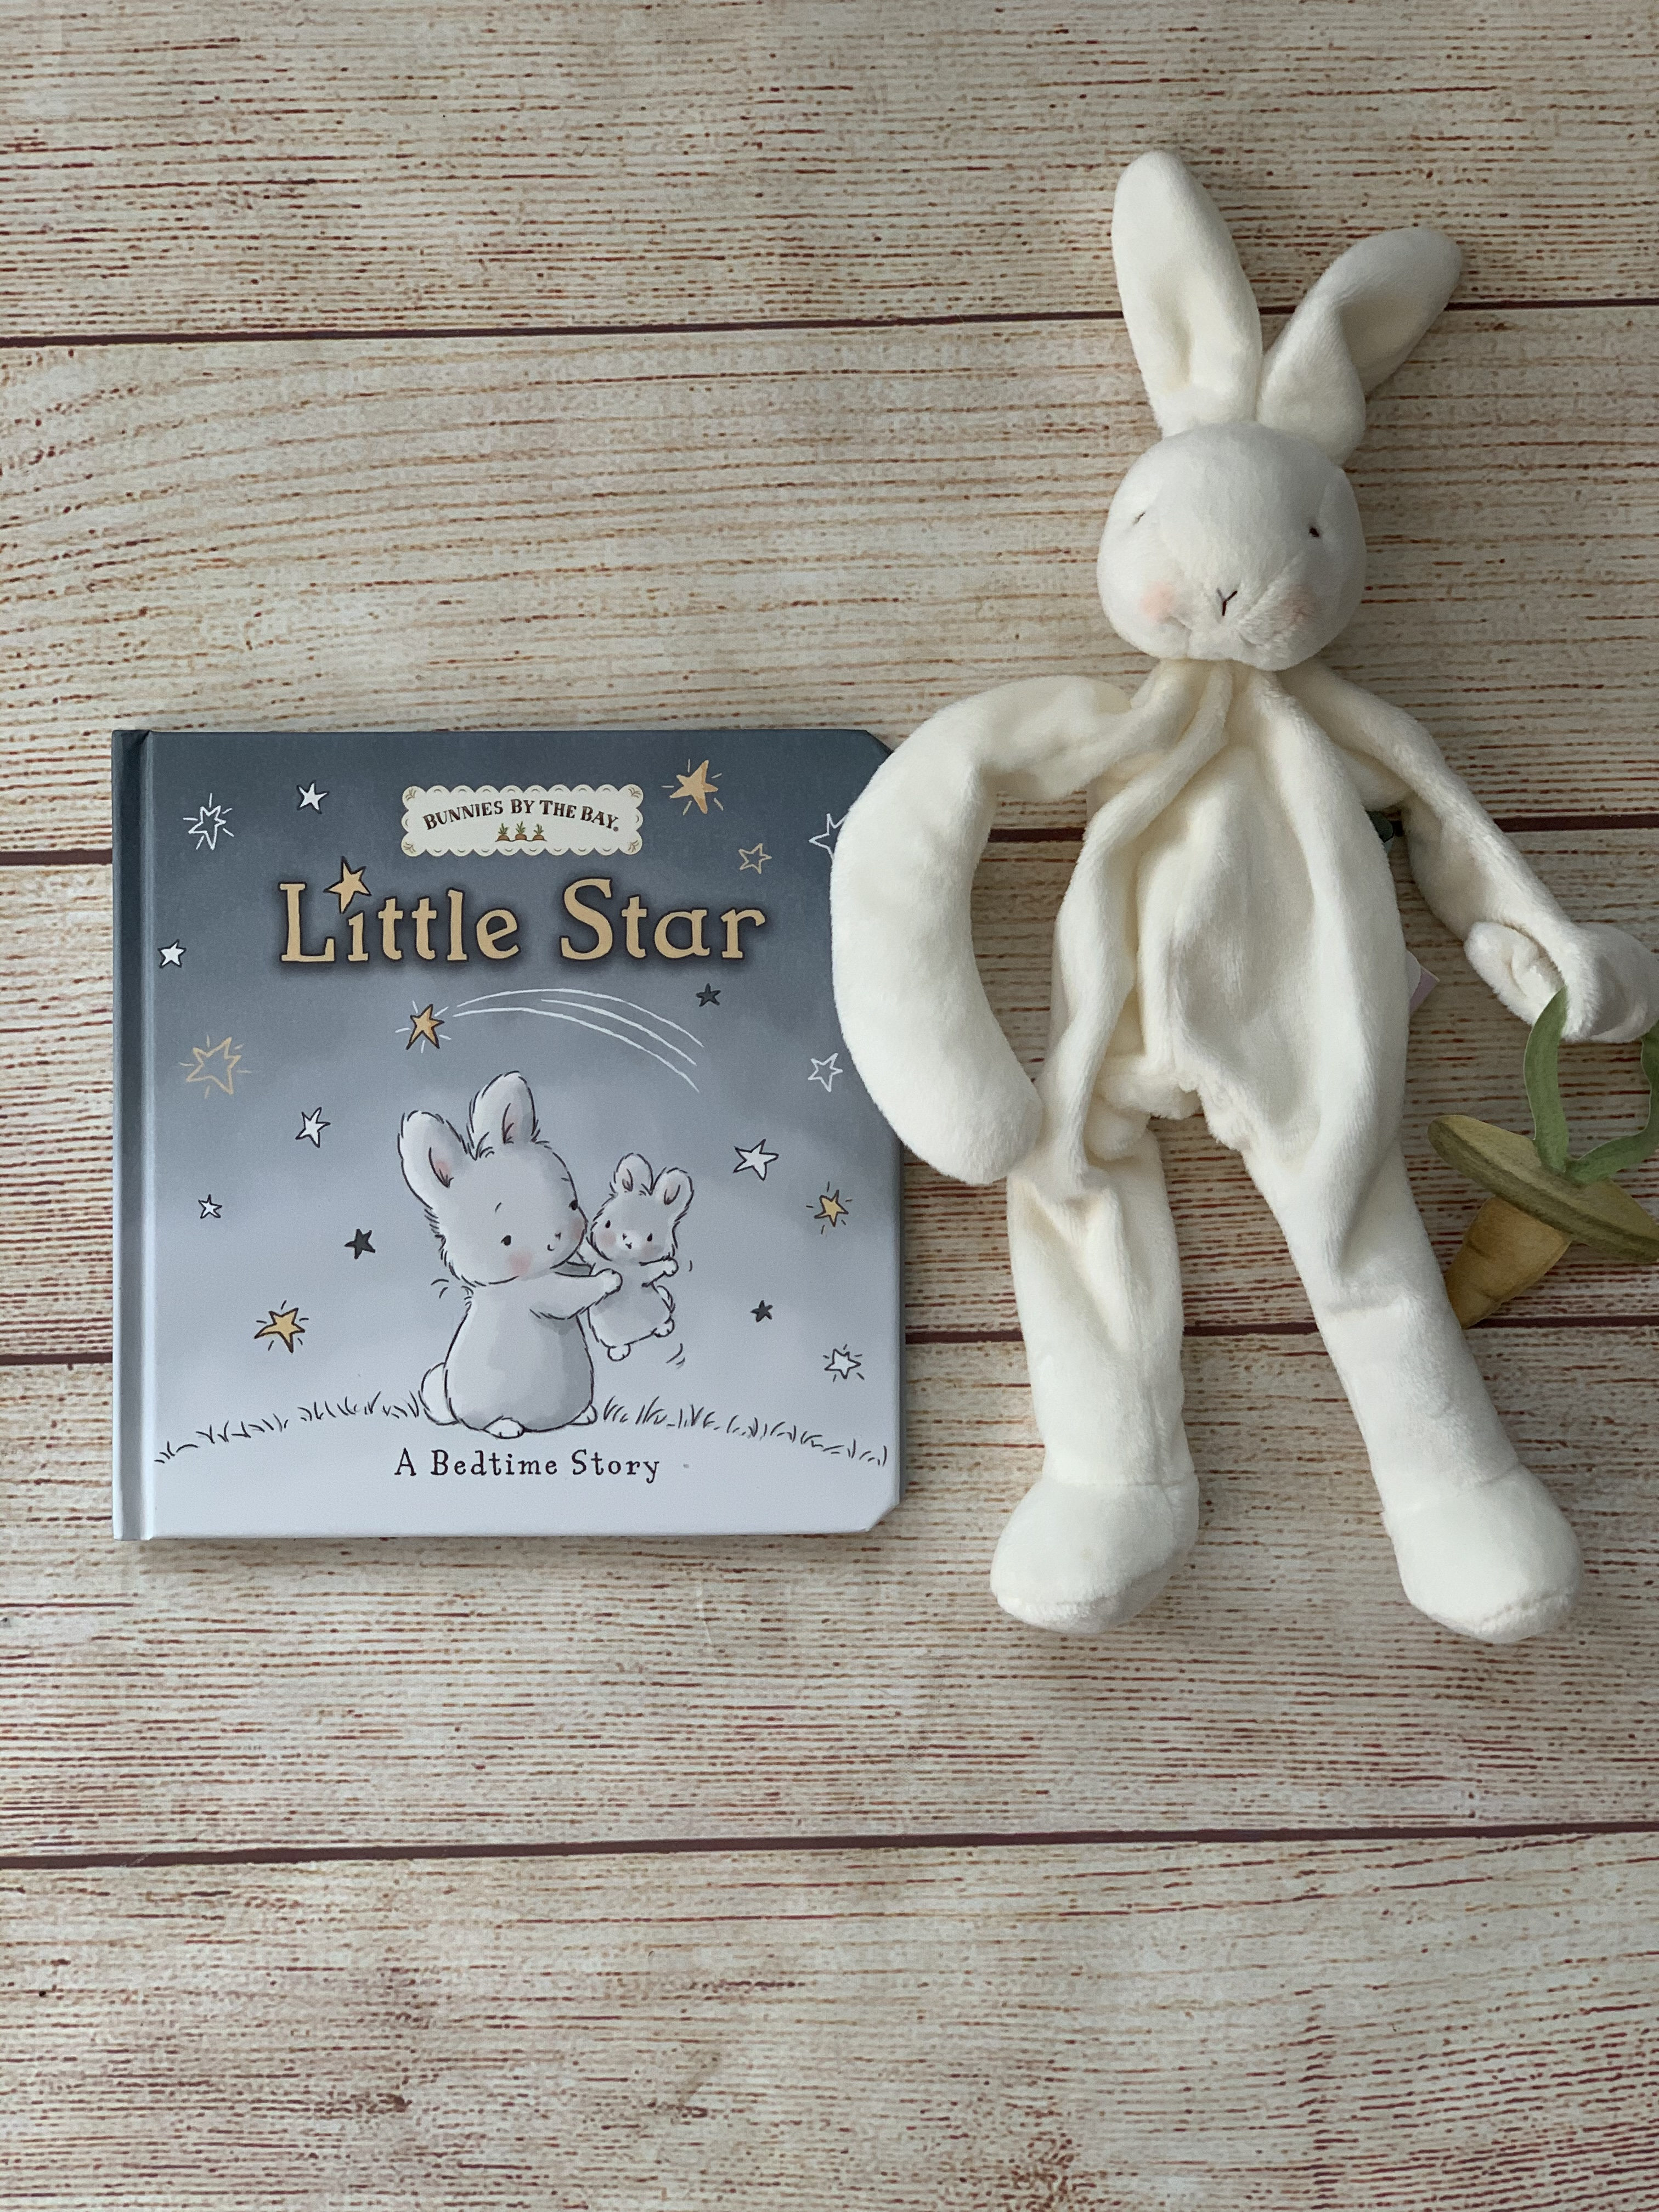 Add a Book and Buddy -Little Star